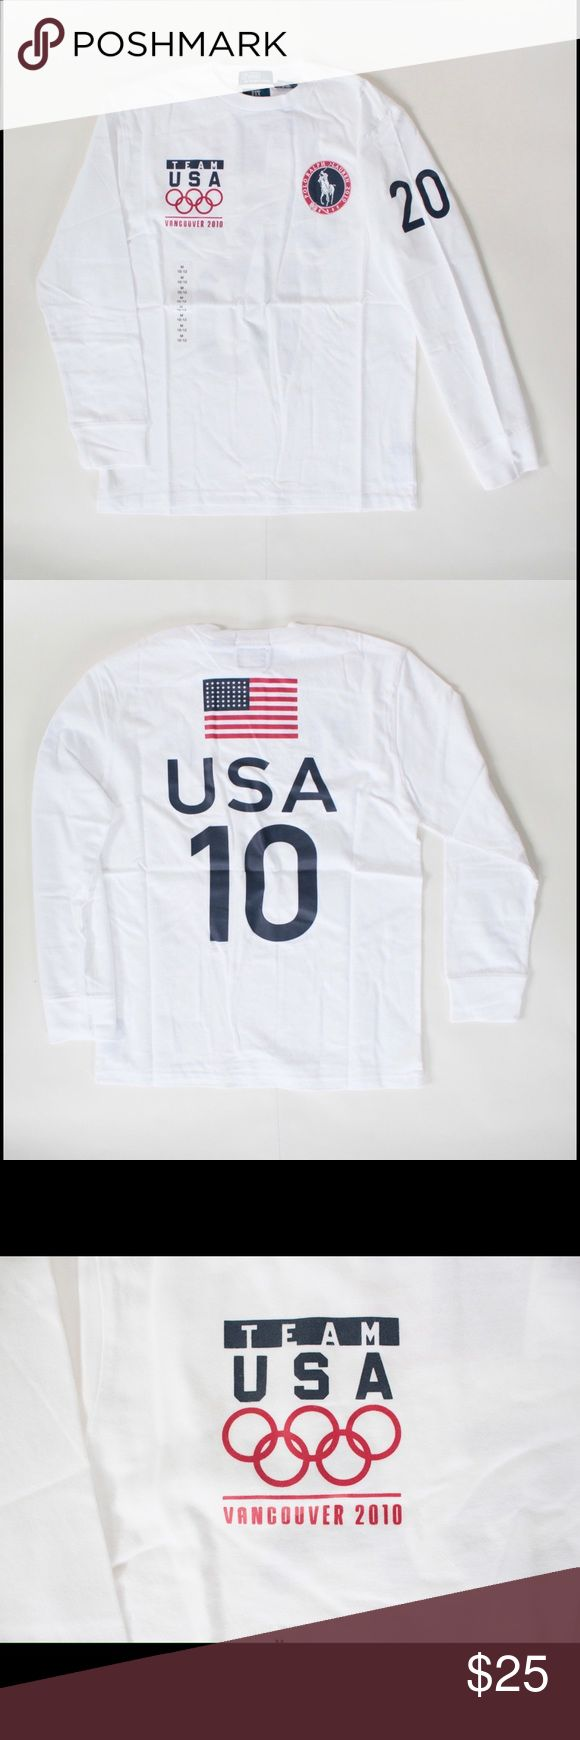 """Polo Ralph Lauren 2010 Olympics boys white t shirt NWT Polo 2010 Vancouver Olympics white t-shirt Approx measurements with garment staying flat Bust: 18"""" Sleeve: 21"""" Length: 24"""" Condition: Pristine Fabric: 100% Cotton Designer: Polo Ralph Lauren Polo by Ralph Lauren Shirts & Tops Tees - Long Sleeve"""